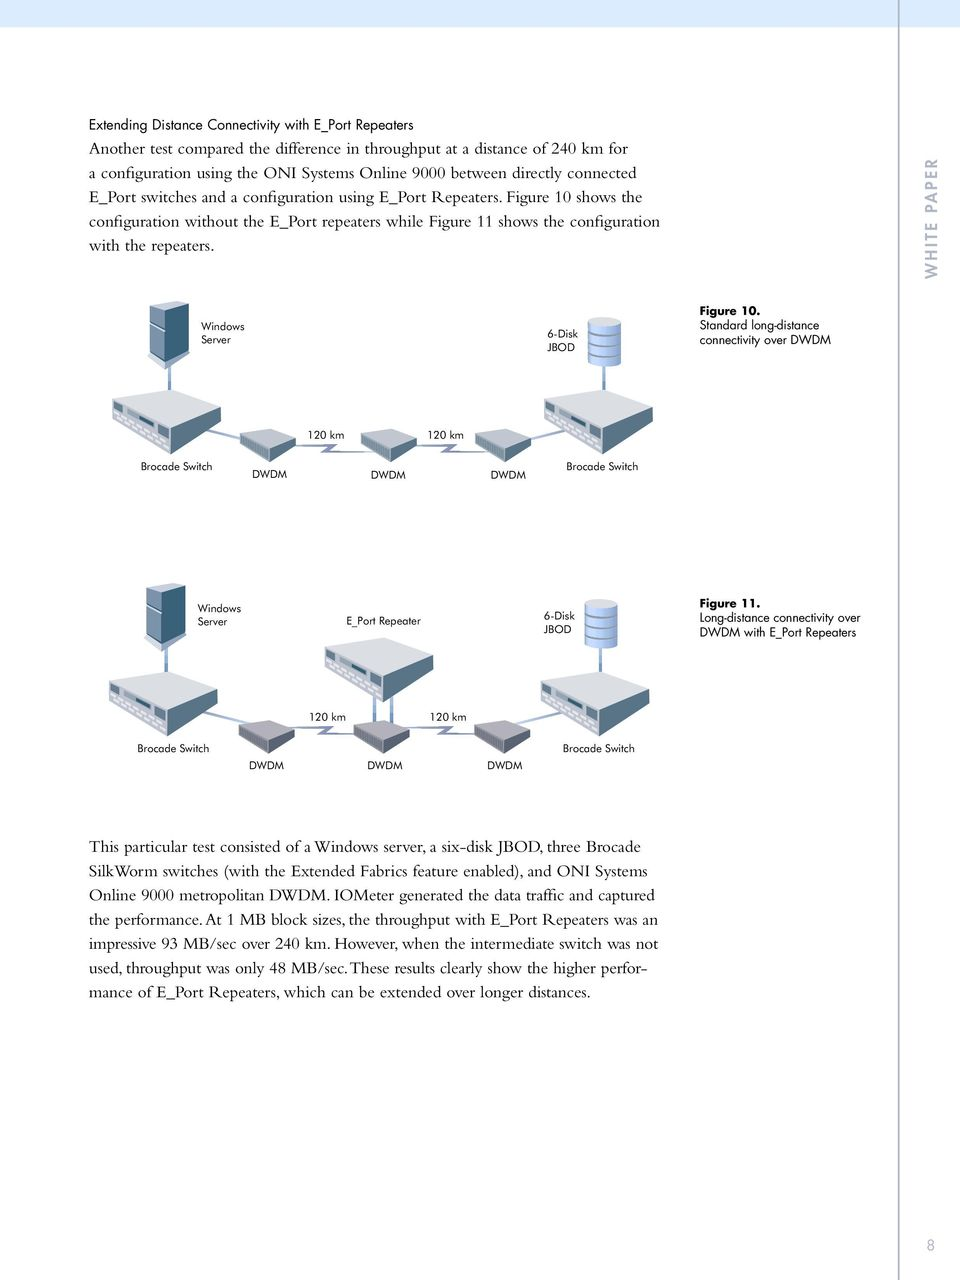 WHITE PAPER Windows Server 6-Disk JBOD Figure 10. Standard long-distance connectivity over 120 km 120 km Brocade Switch Brocade Switch Windows Server E_Port Repeater 6-Disk JBOD Figure 11.